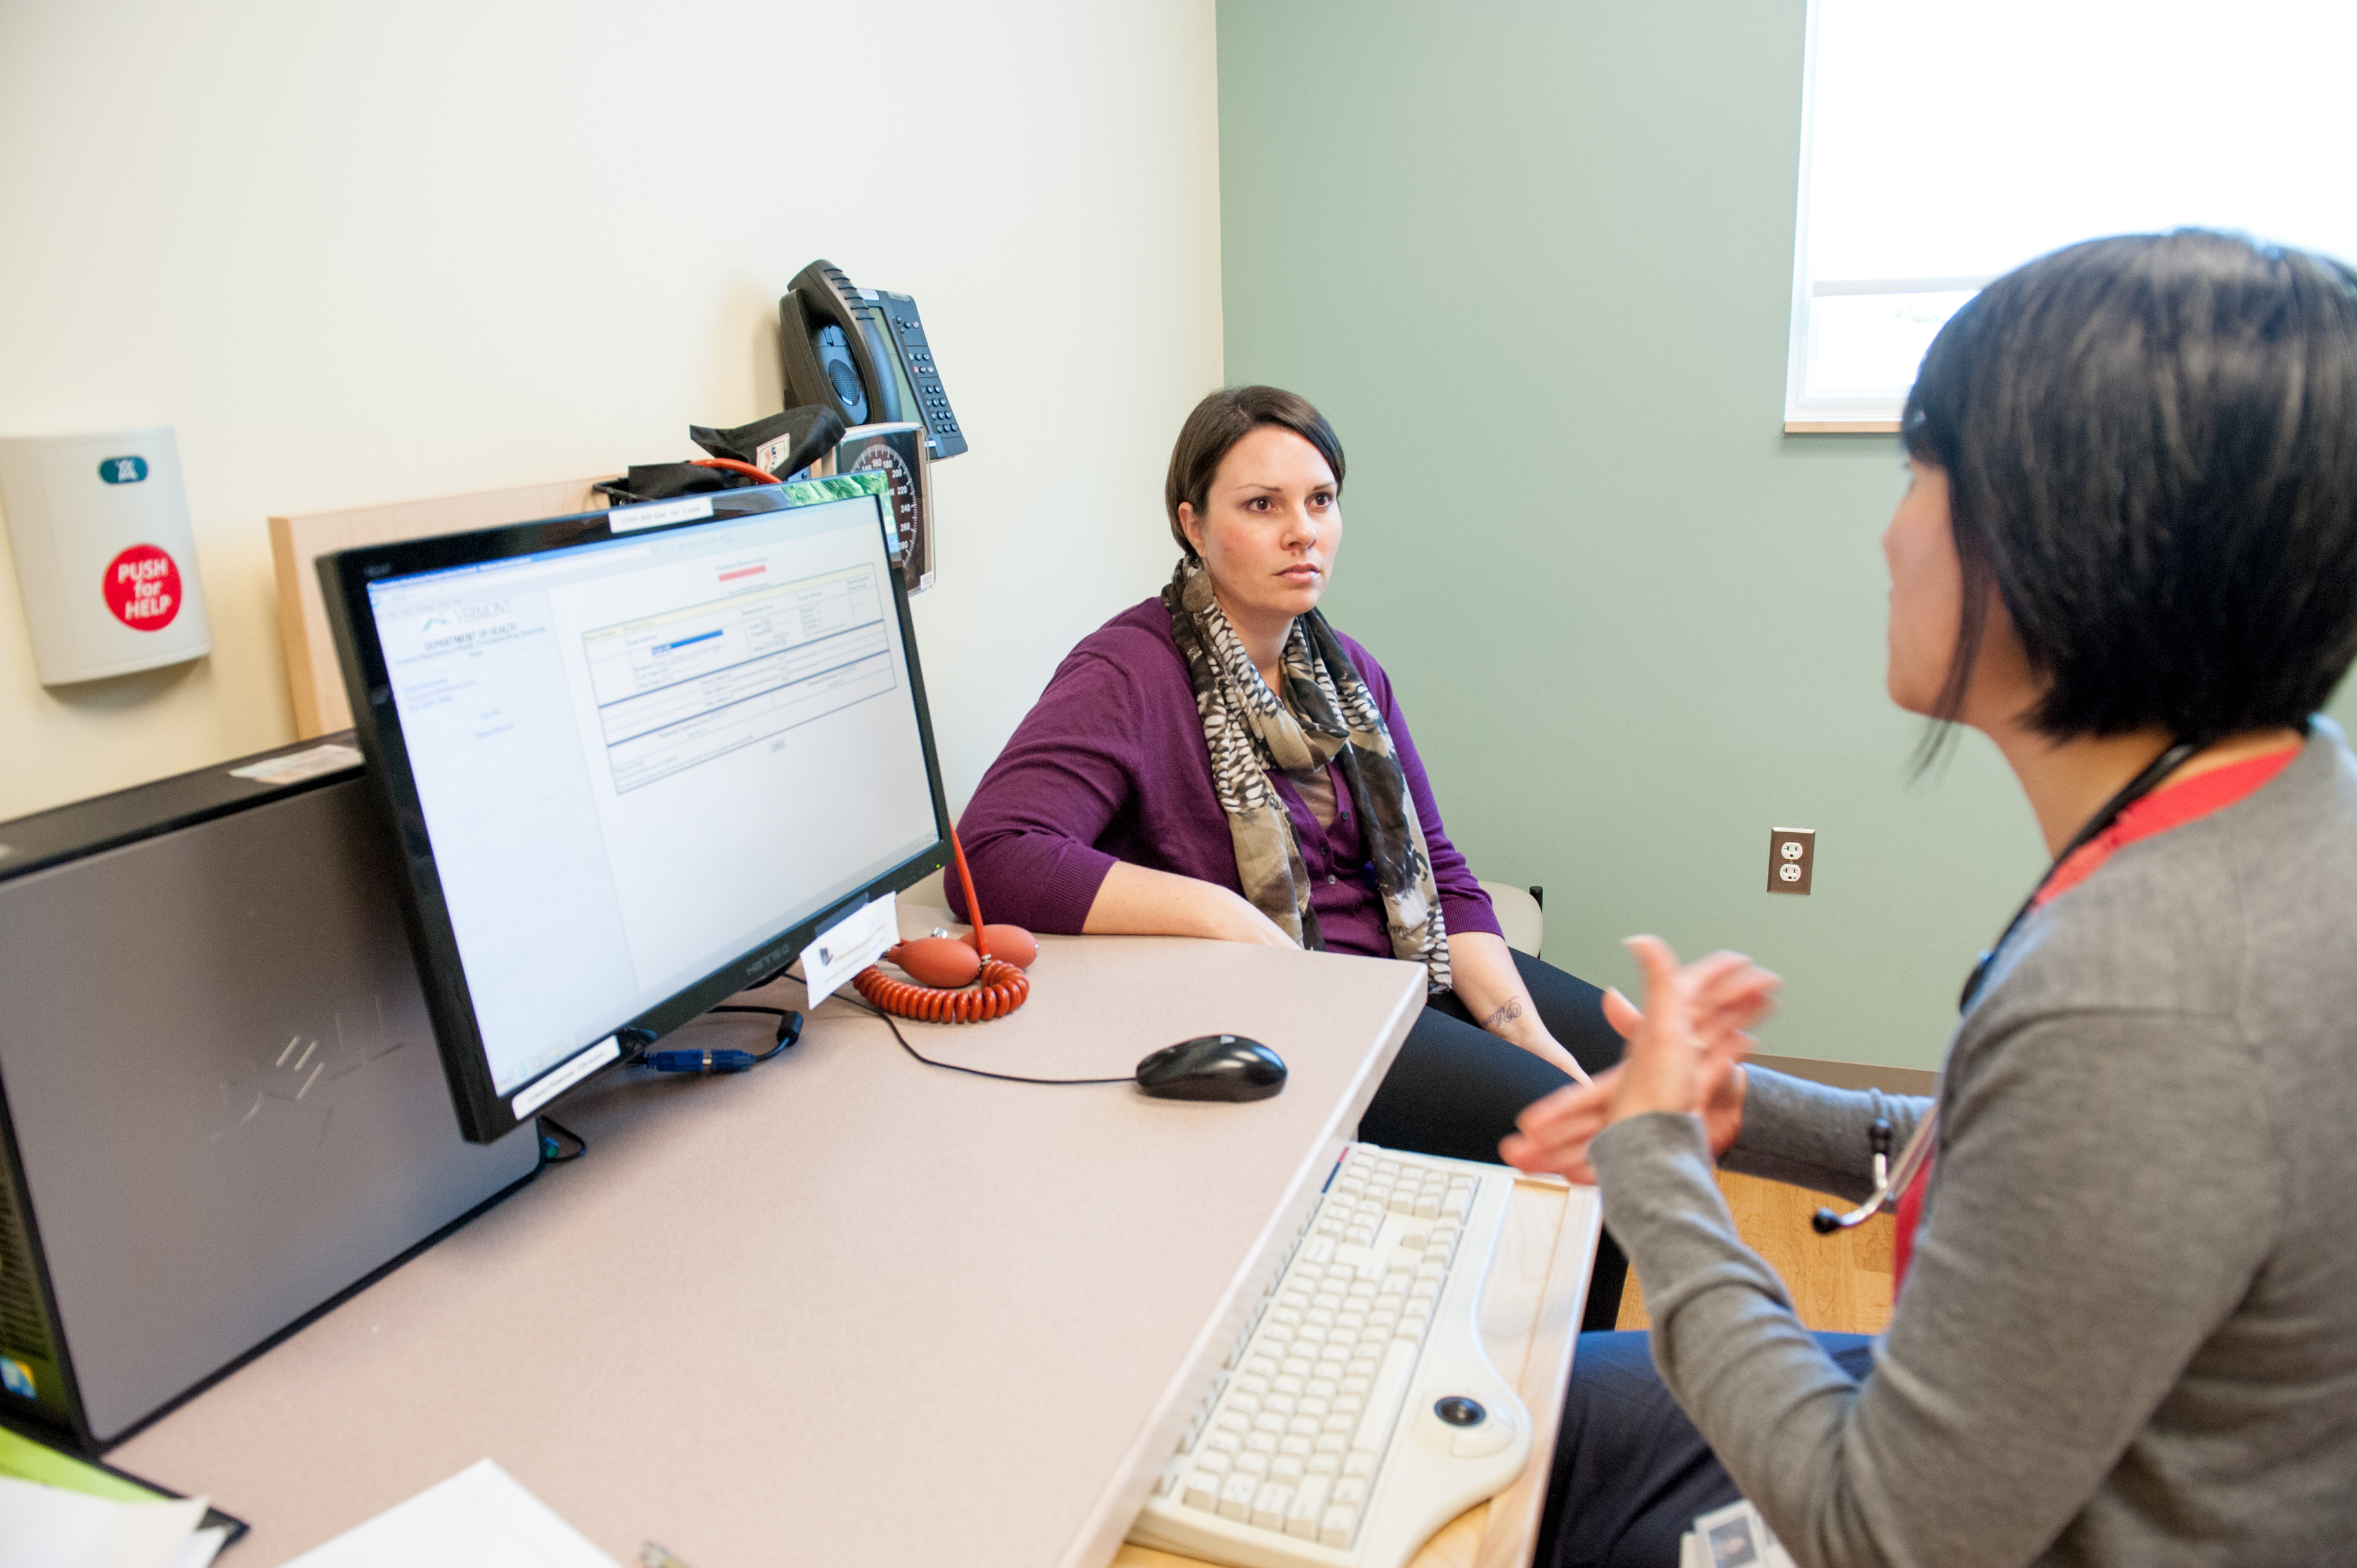 Health provider and patient at computer